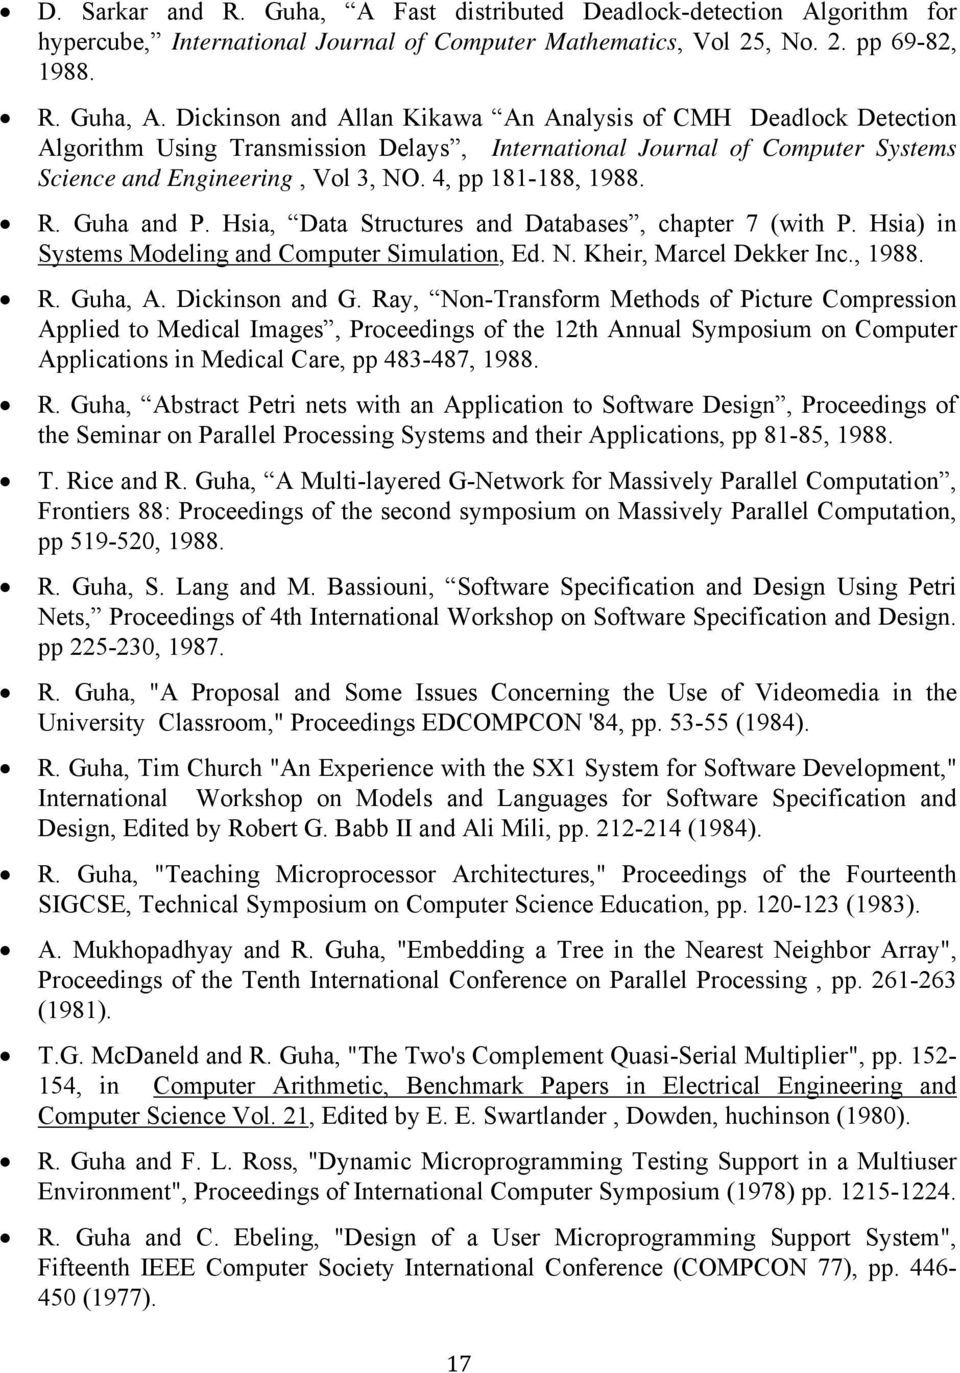 Dickinson and Allan Kikawa An Analysis of CMH Deadlock Detection Algorithm Using Transmission Delays, International Journal of Computer Systems Science and Engineering, Vol 3, NO. 4, pp 181-188, 1988.